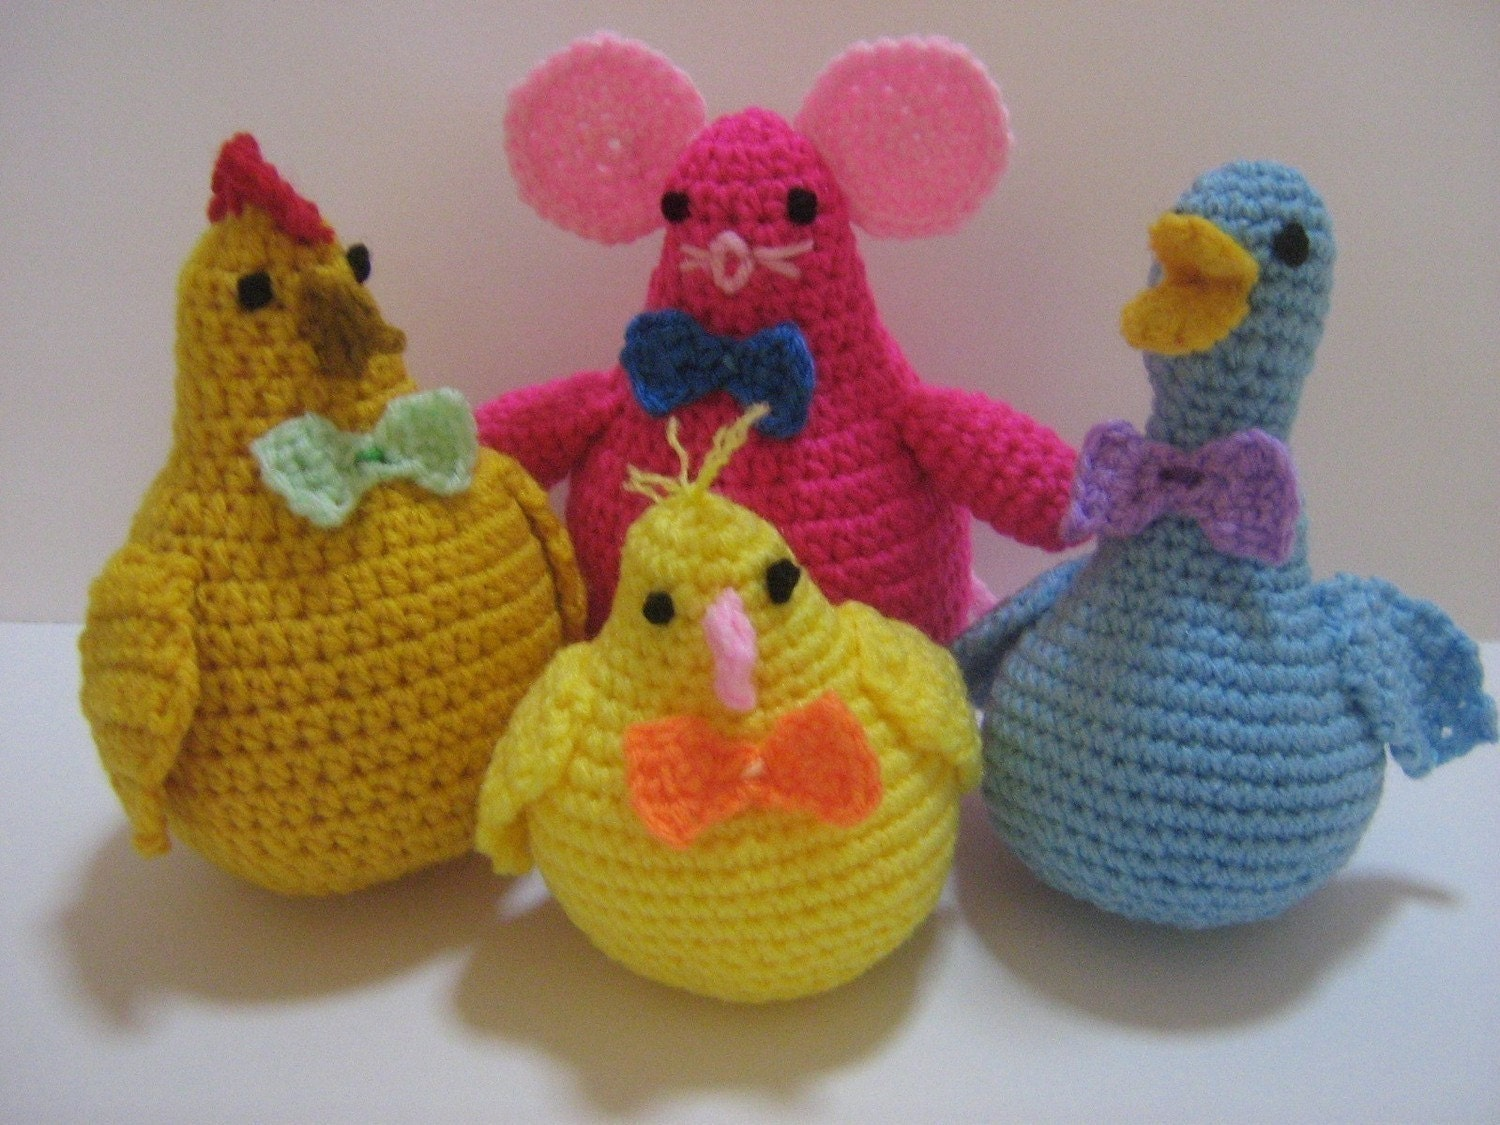 Crochet Patterns Of Animals : Amigurumi Crochet Pattern Animal Crochet Pattern PDF by melbangel